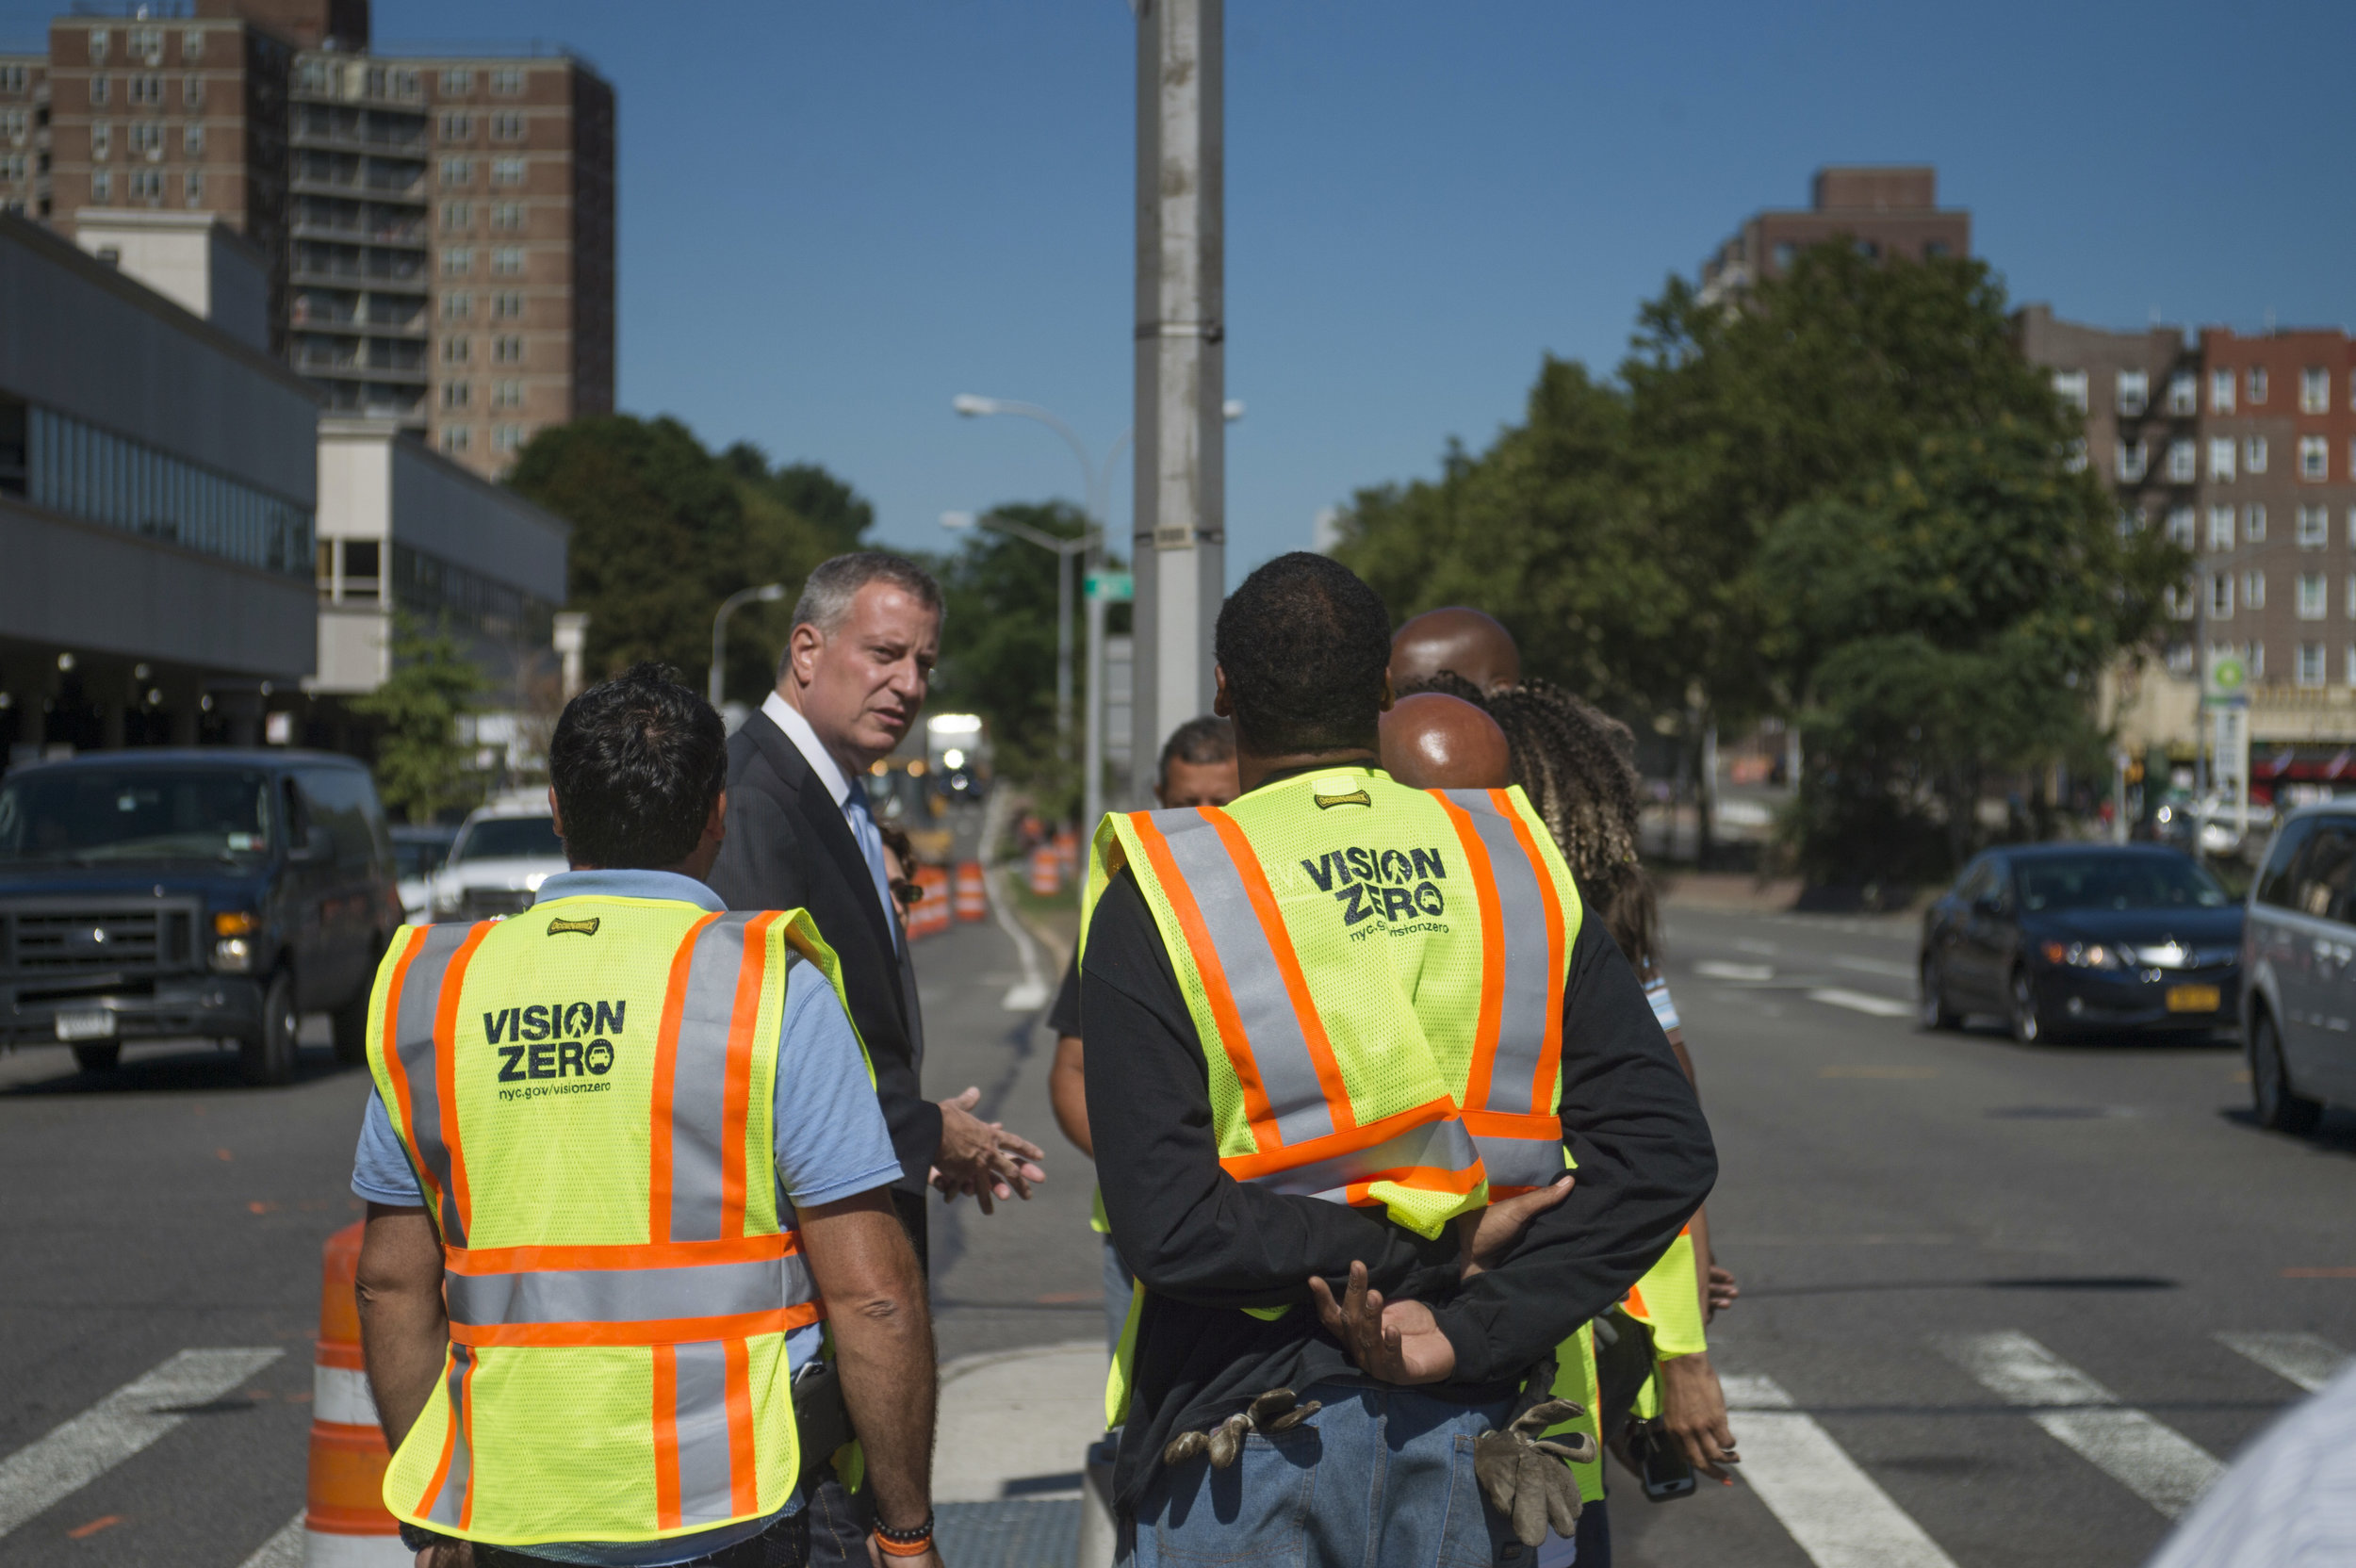 Mayor Bill de Blasio stands at 61st Street and Queens Boulevard after announcing the start of a $100 million Vision Zero project to redesign Queens Boulevard. So far this year, pedestrian deaths and injuries have increased in Queens. Ed Reed/Mayoral Photography Office.